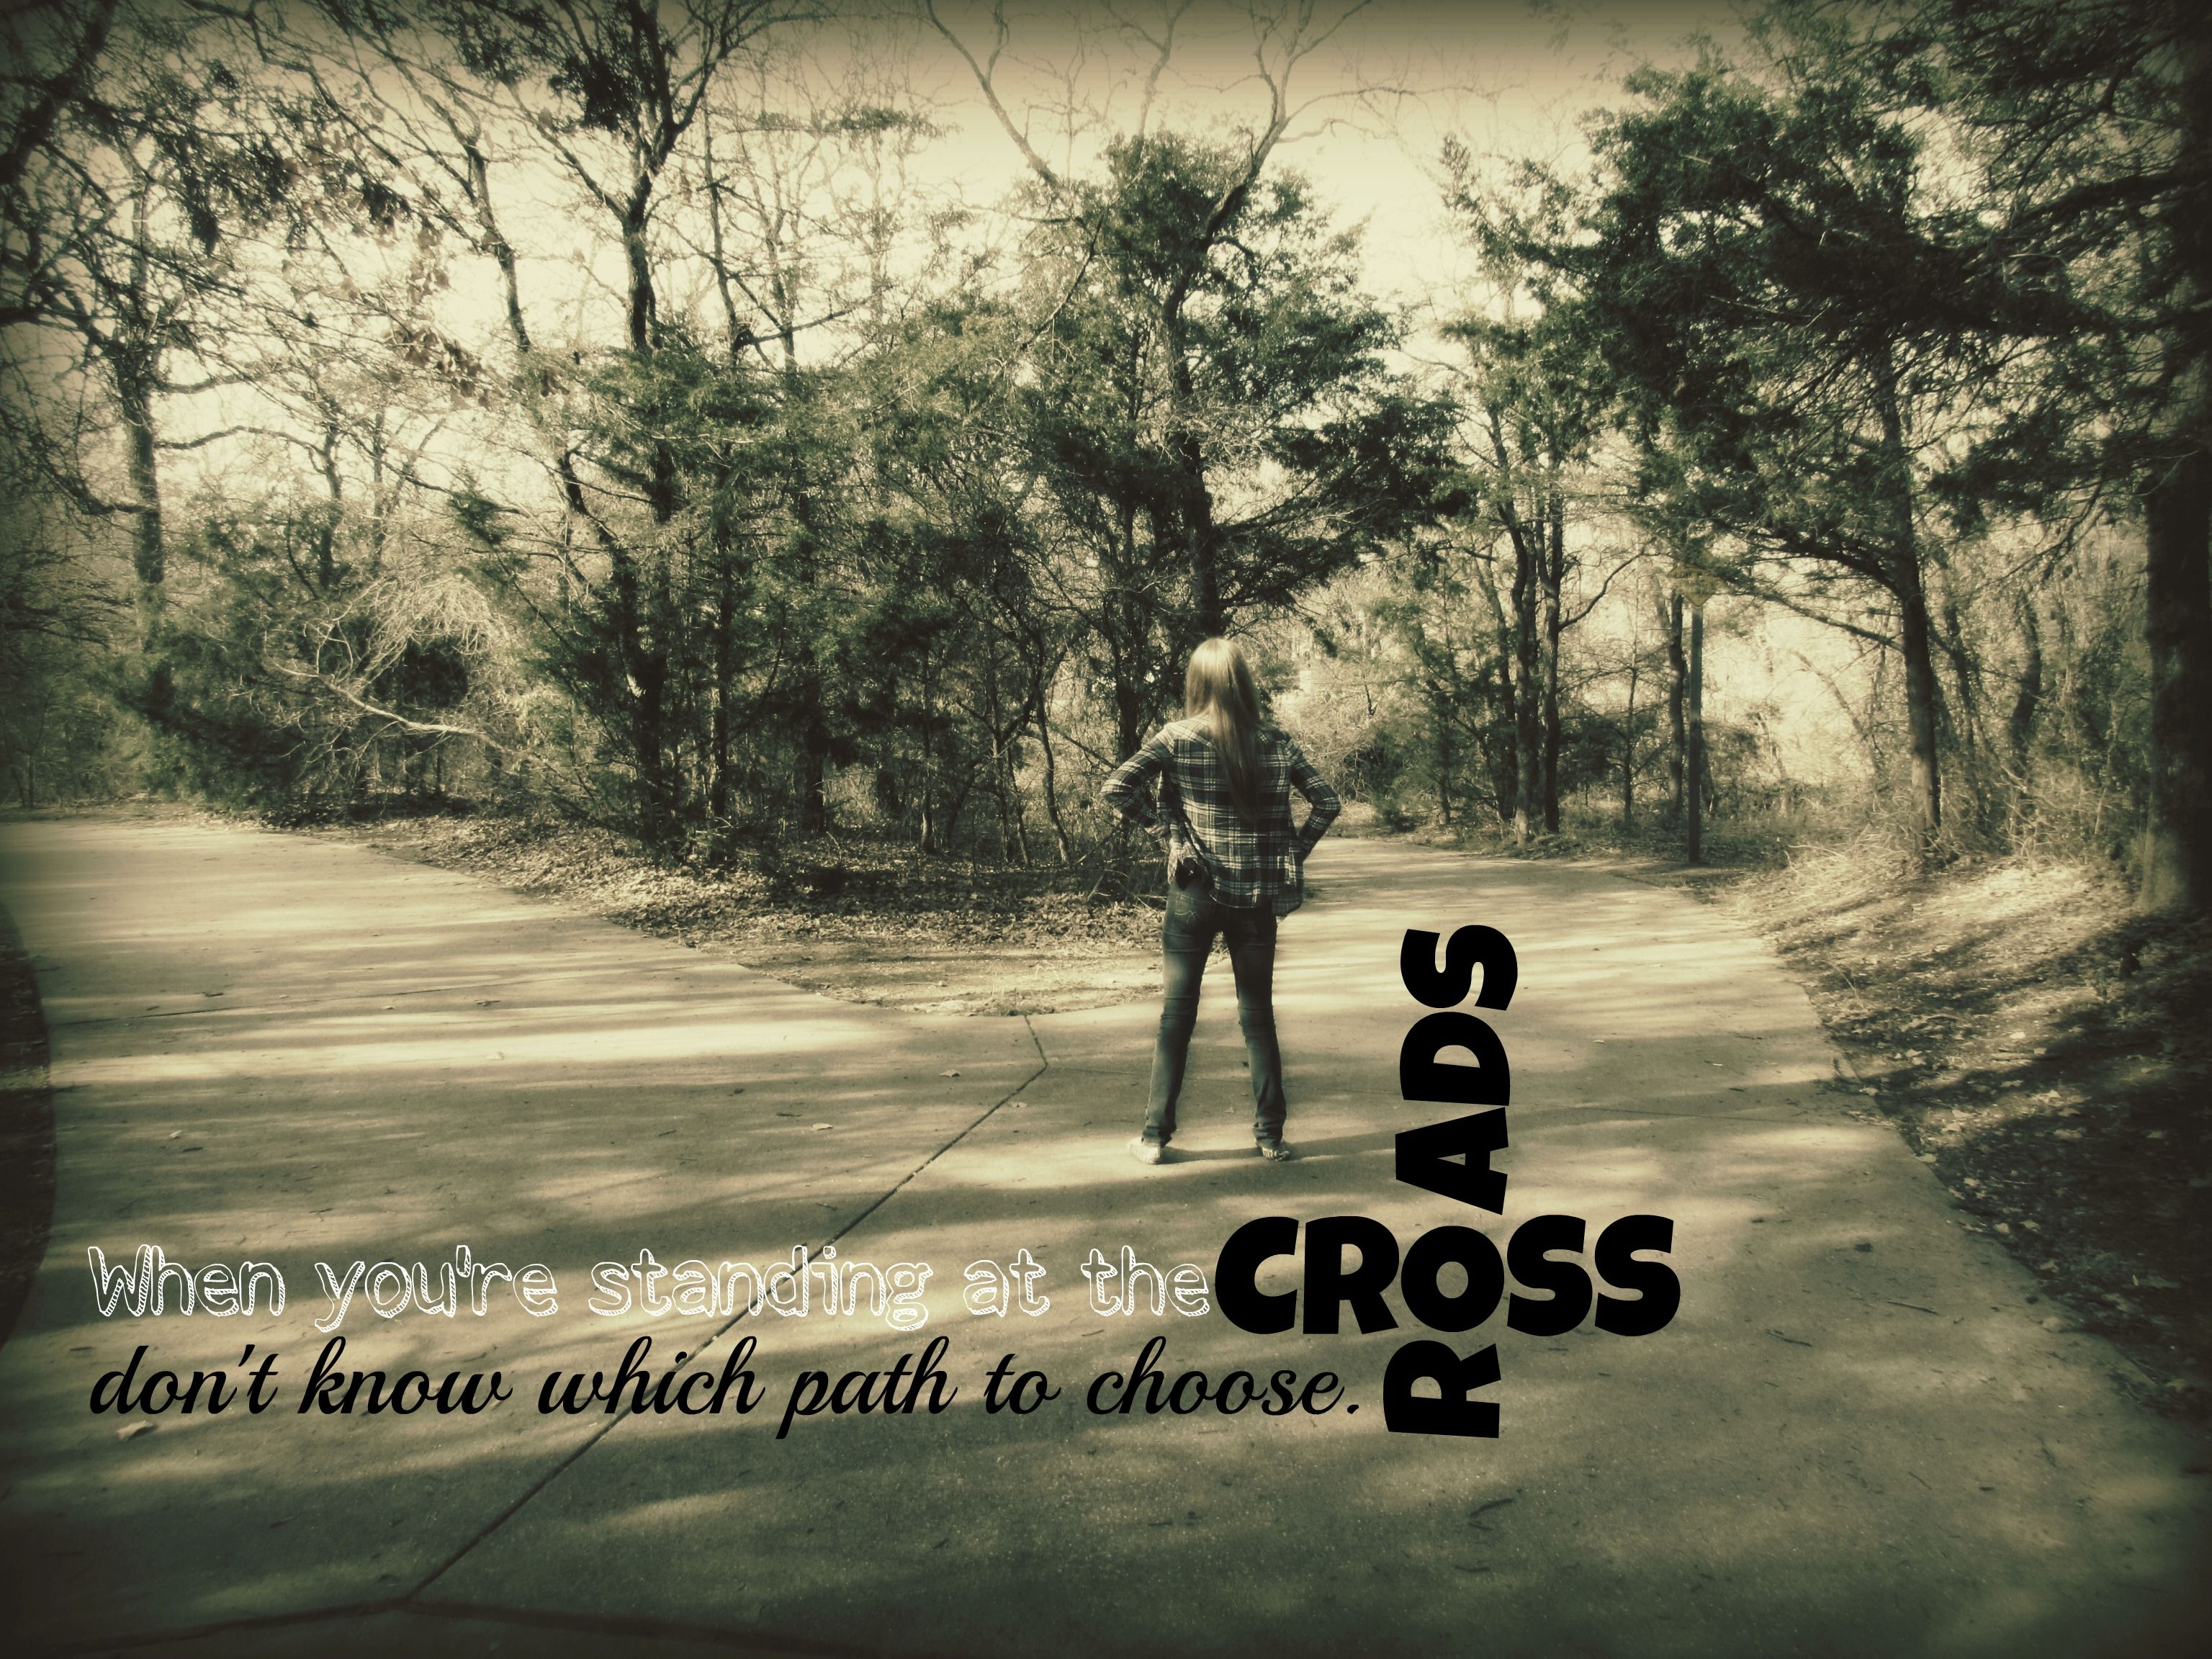 When you're standing at the crossroads, don't know which